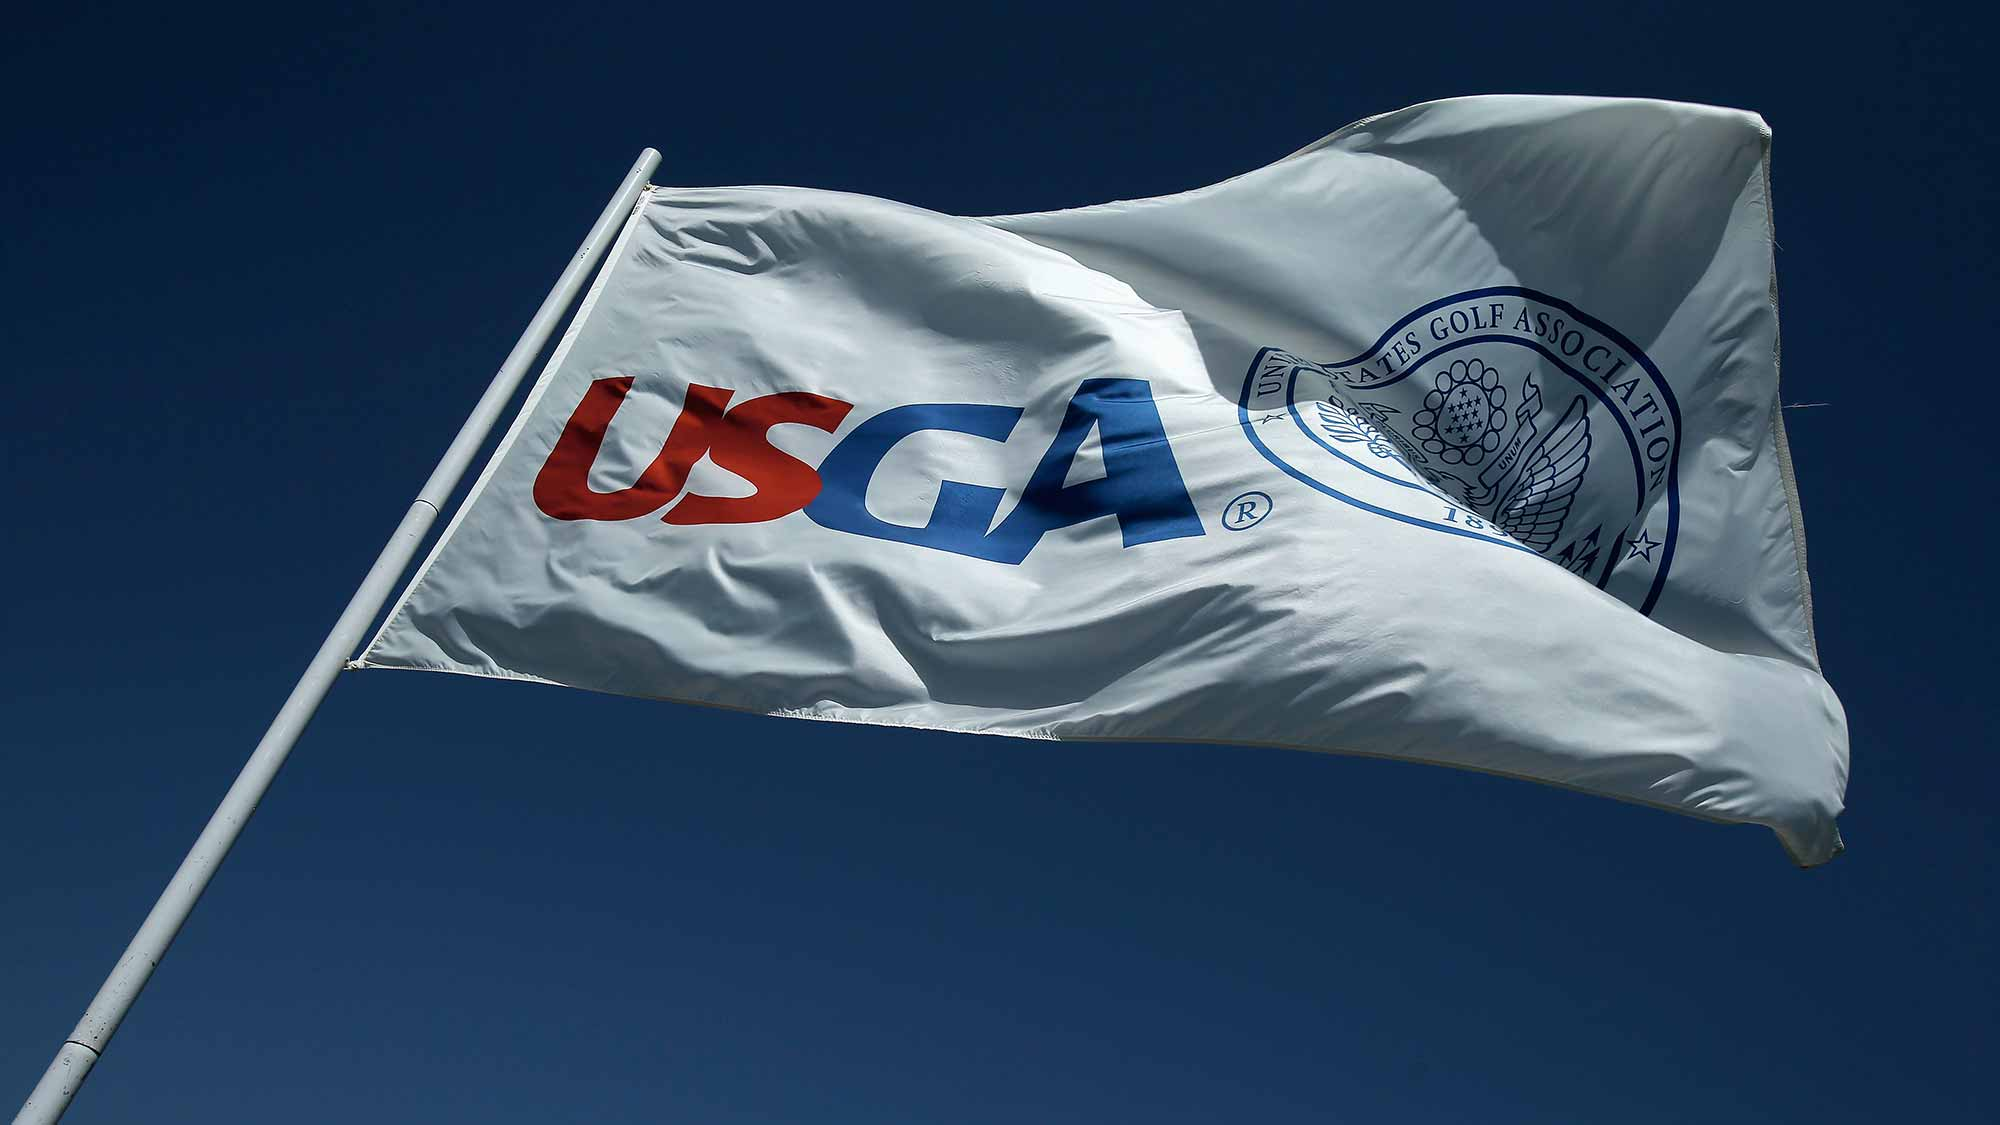 News Rules of Golf Decision Limits Use of Video Review